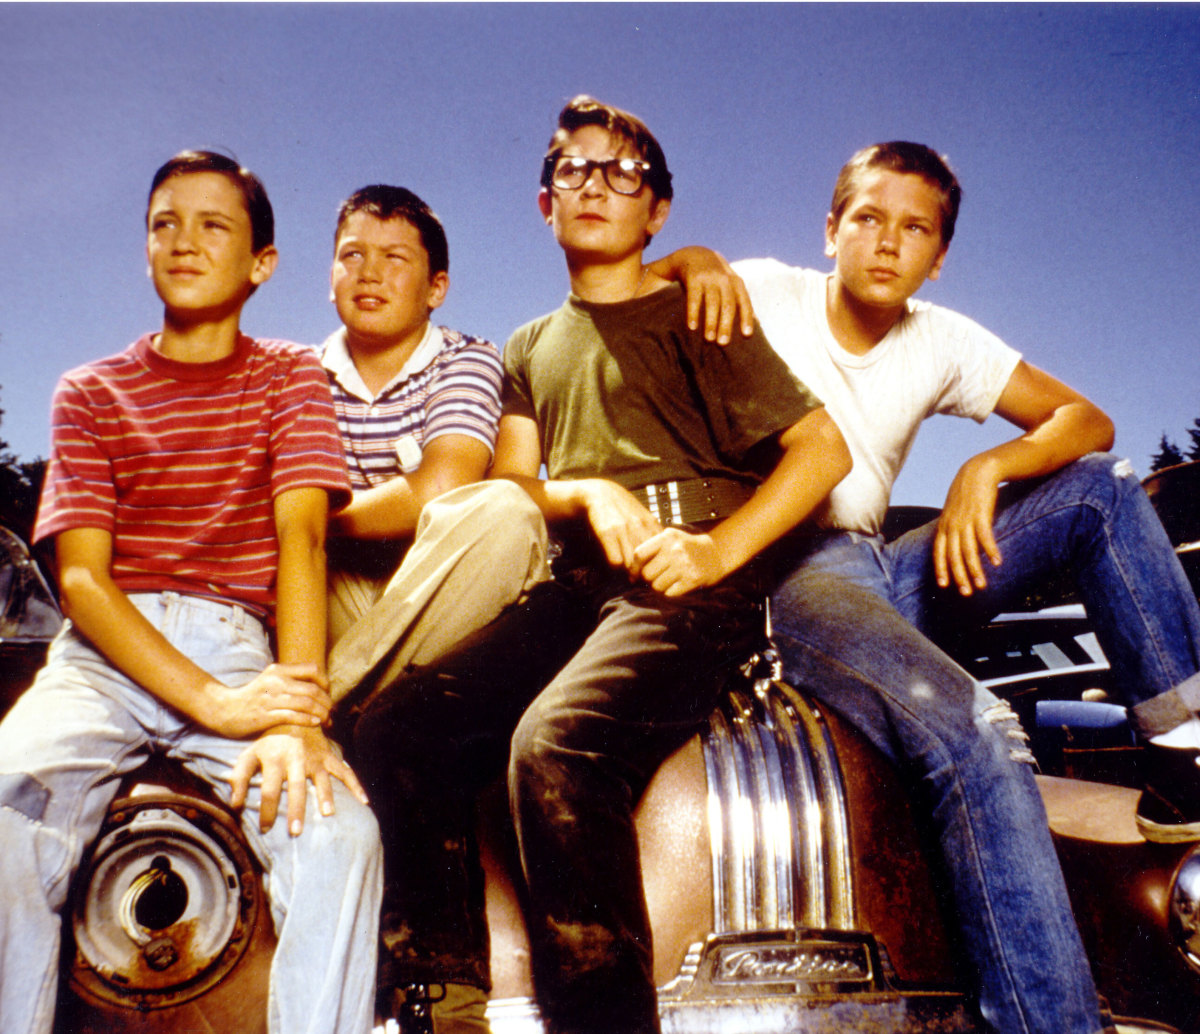 stand by me cast where are they now biography - Finding John Christmas Cast